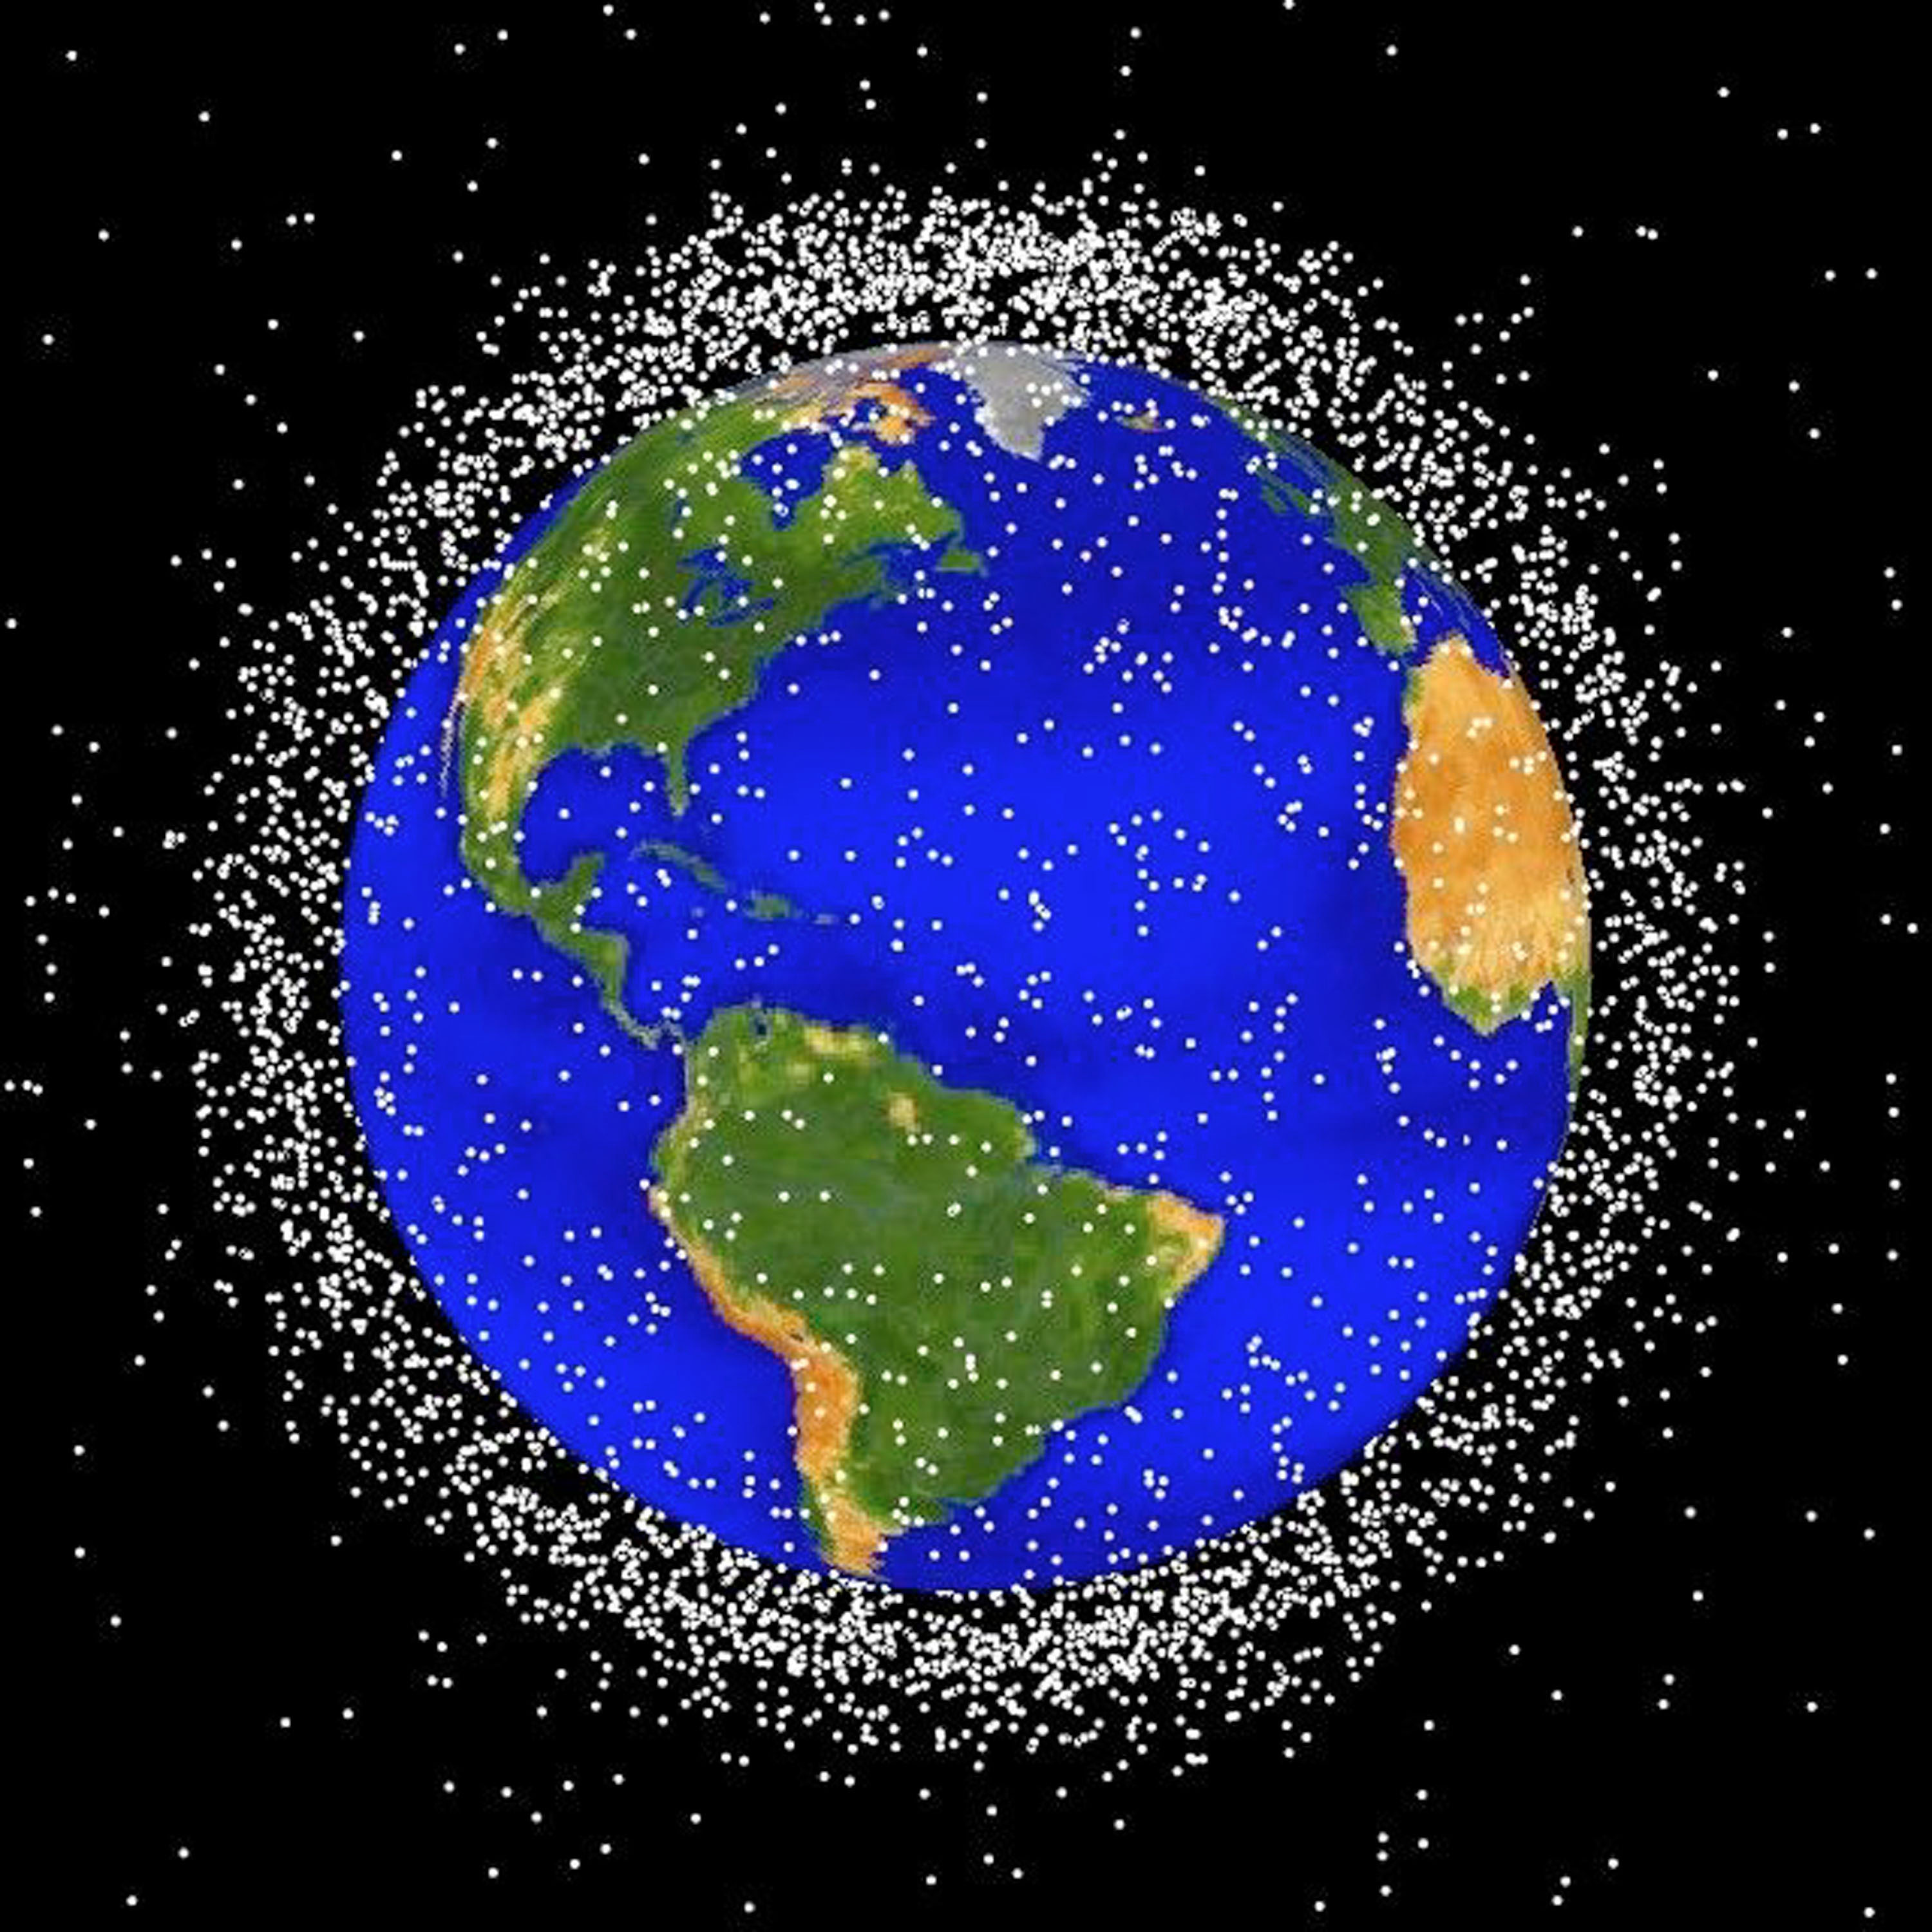 Graphical Representation Of Space Debris Around Earth GRAPHIC - (CIRCA 1989): This National Aeronautics and Space Administration (NASA) handout image shows a graphical representation of space debris in low Earth orbit. According to the European Space Agency there are 8,500 objects larger than 10 cm (approximately 3.9 inches) orbiting the earth and 150,000 larger than 1 cm (approximately 0.39 inches). NASA investigators are looking into the possibility that space debris may have caused the break up of the Space Shuttle Columbia upon reentry February 1, 2003 over Texas. (Photo by NASA/Getty Images)